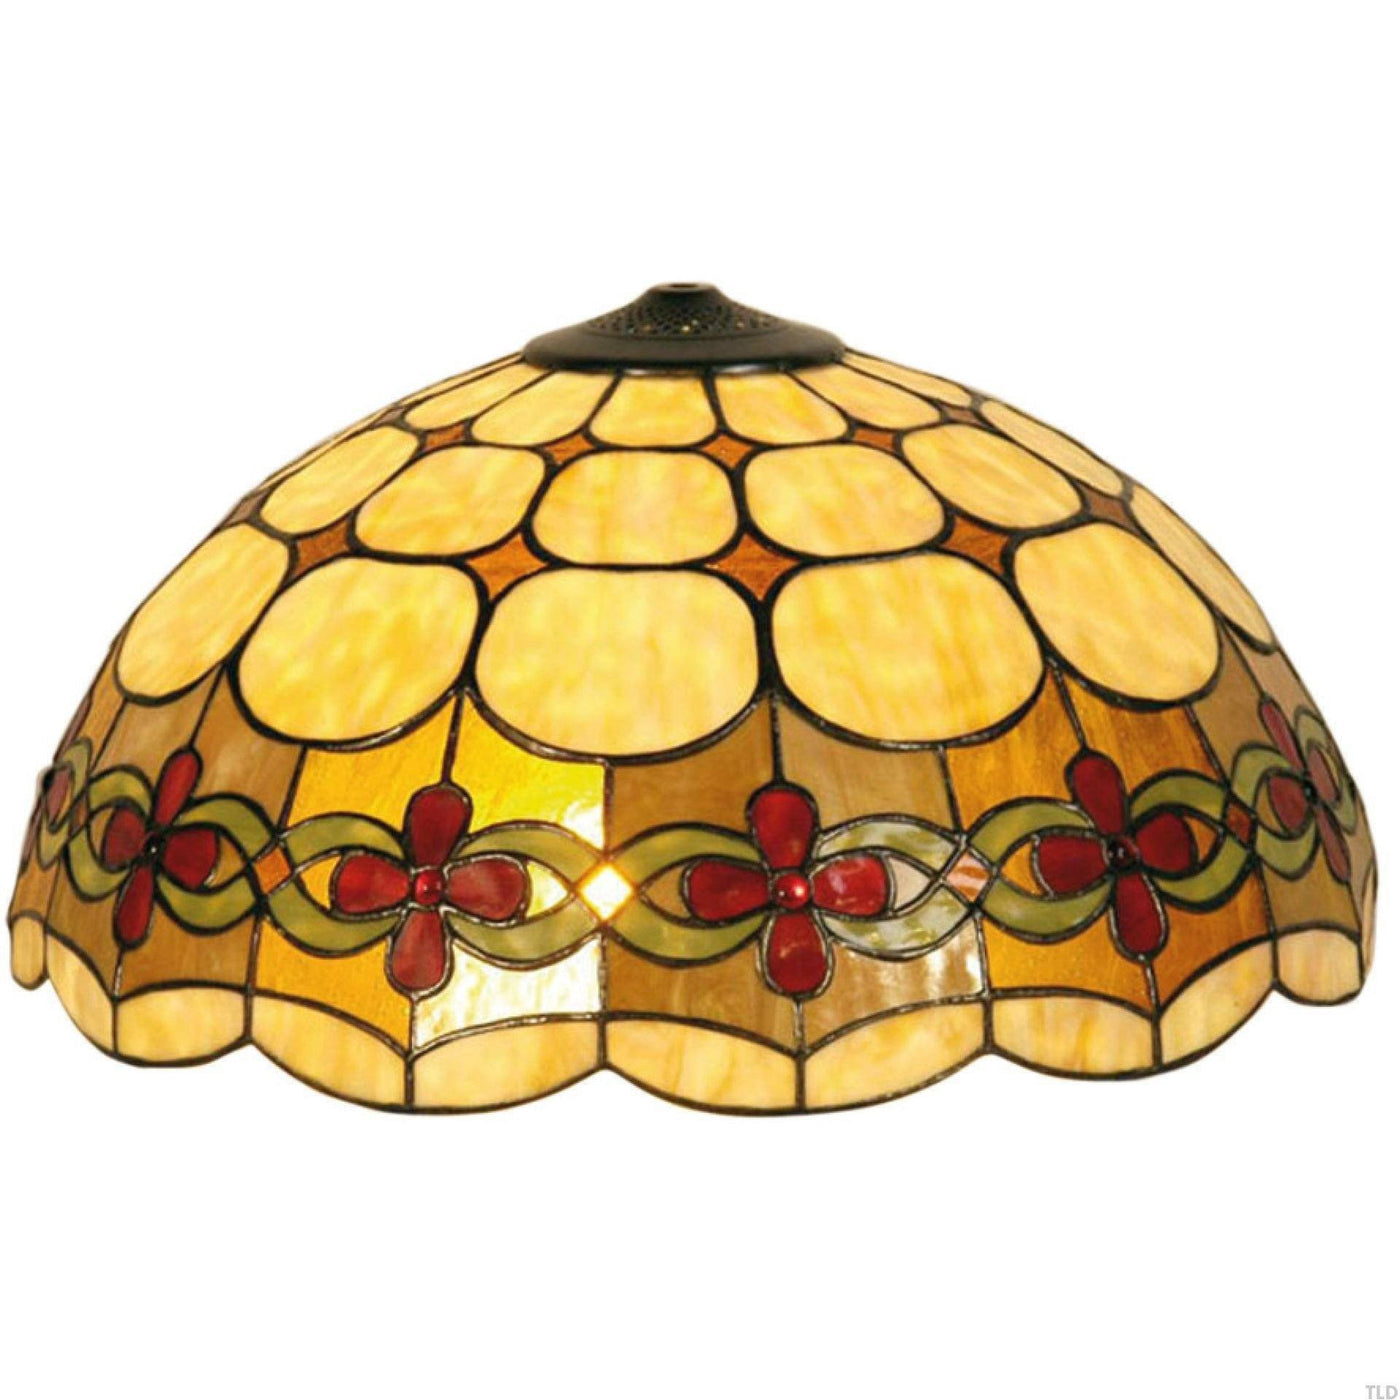 bbfe48fd102b Tiffany Replacement Table Lamp Shades   Bases - Atlantic Large Tiffany  Replacement Shade